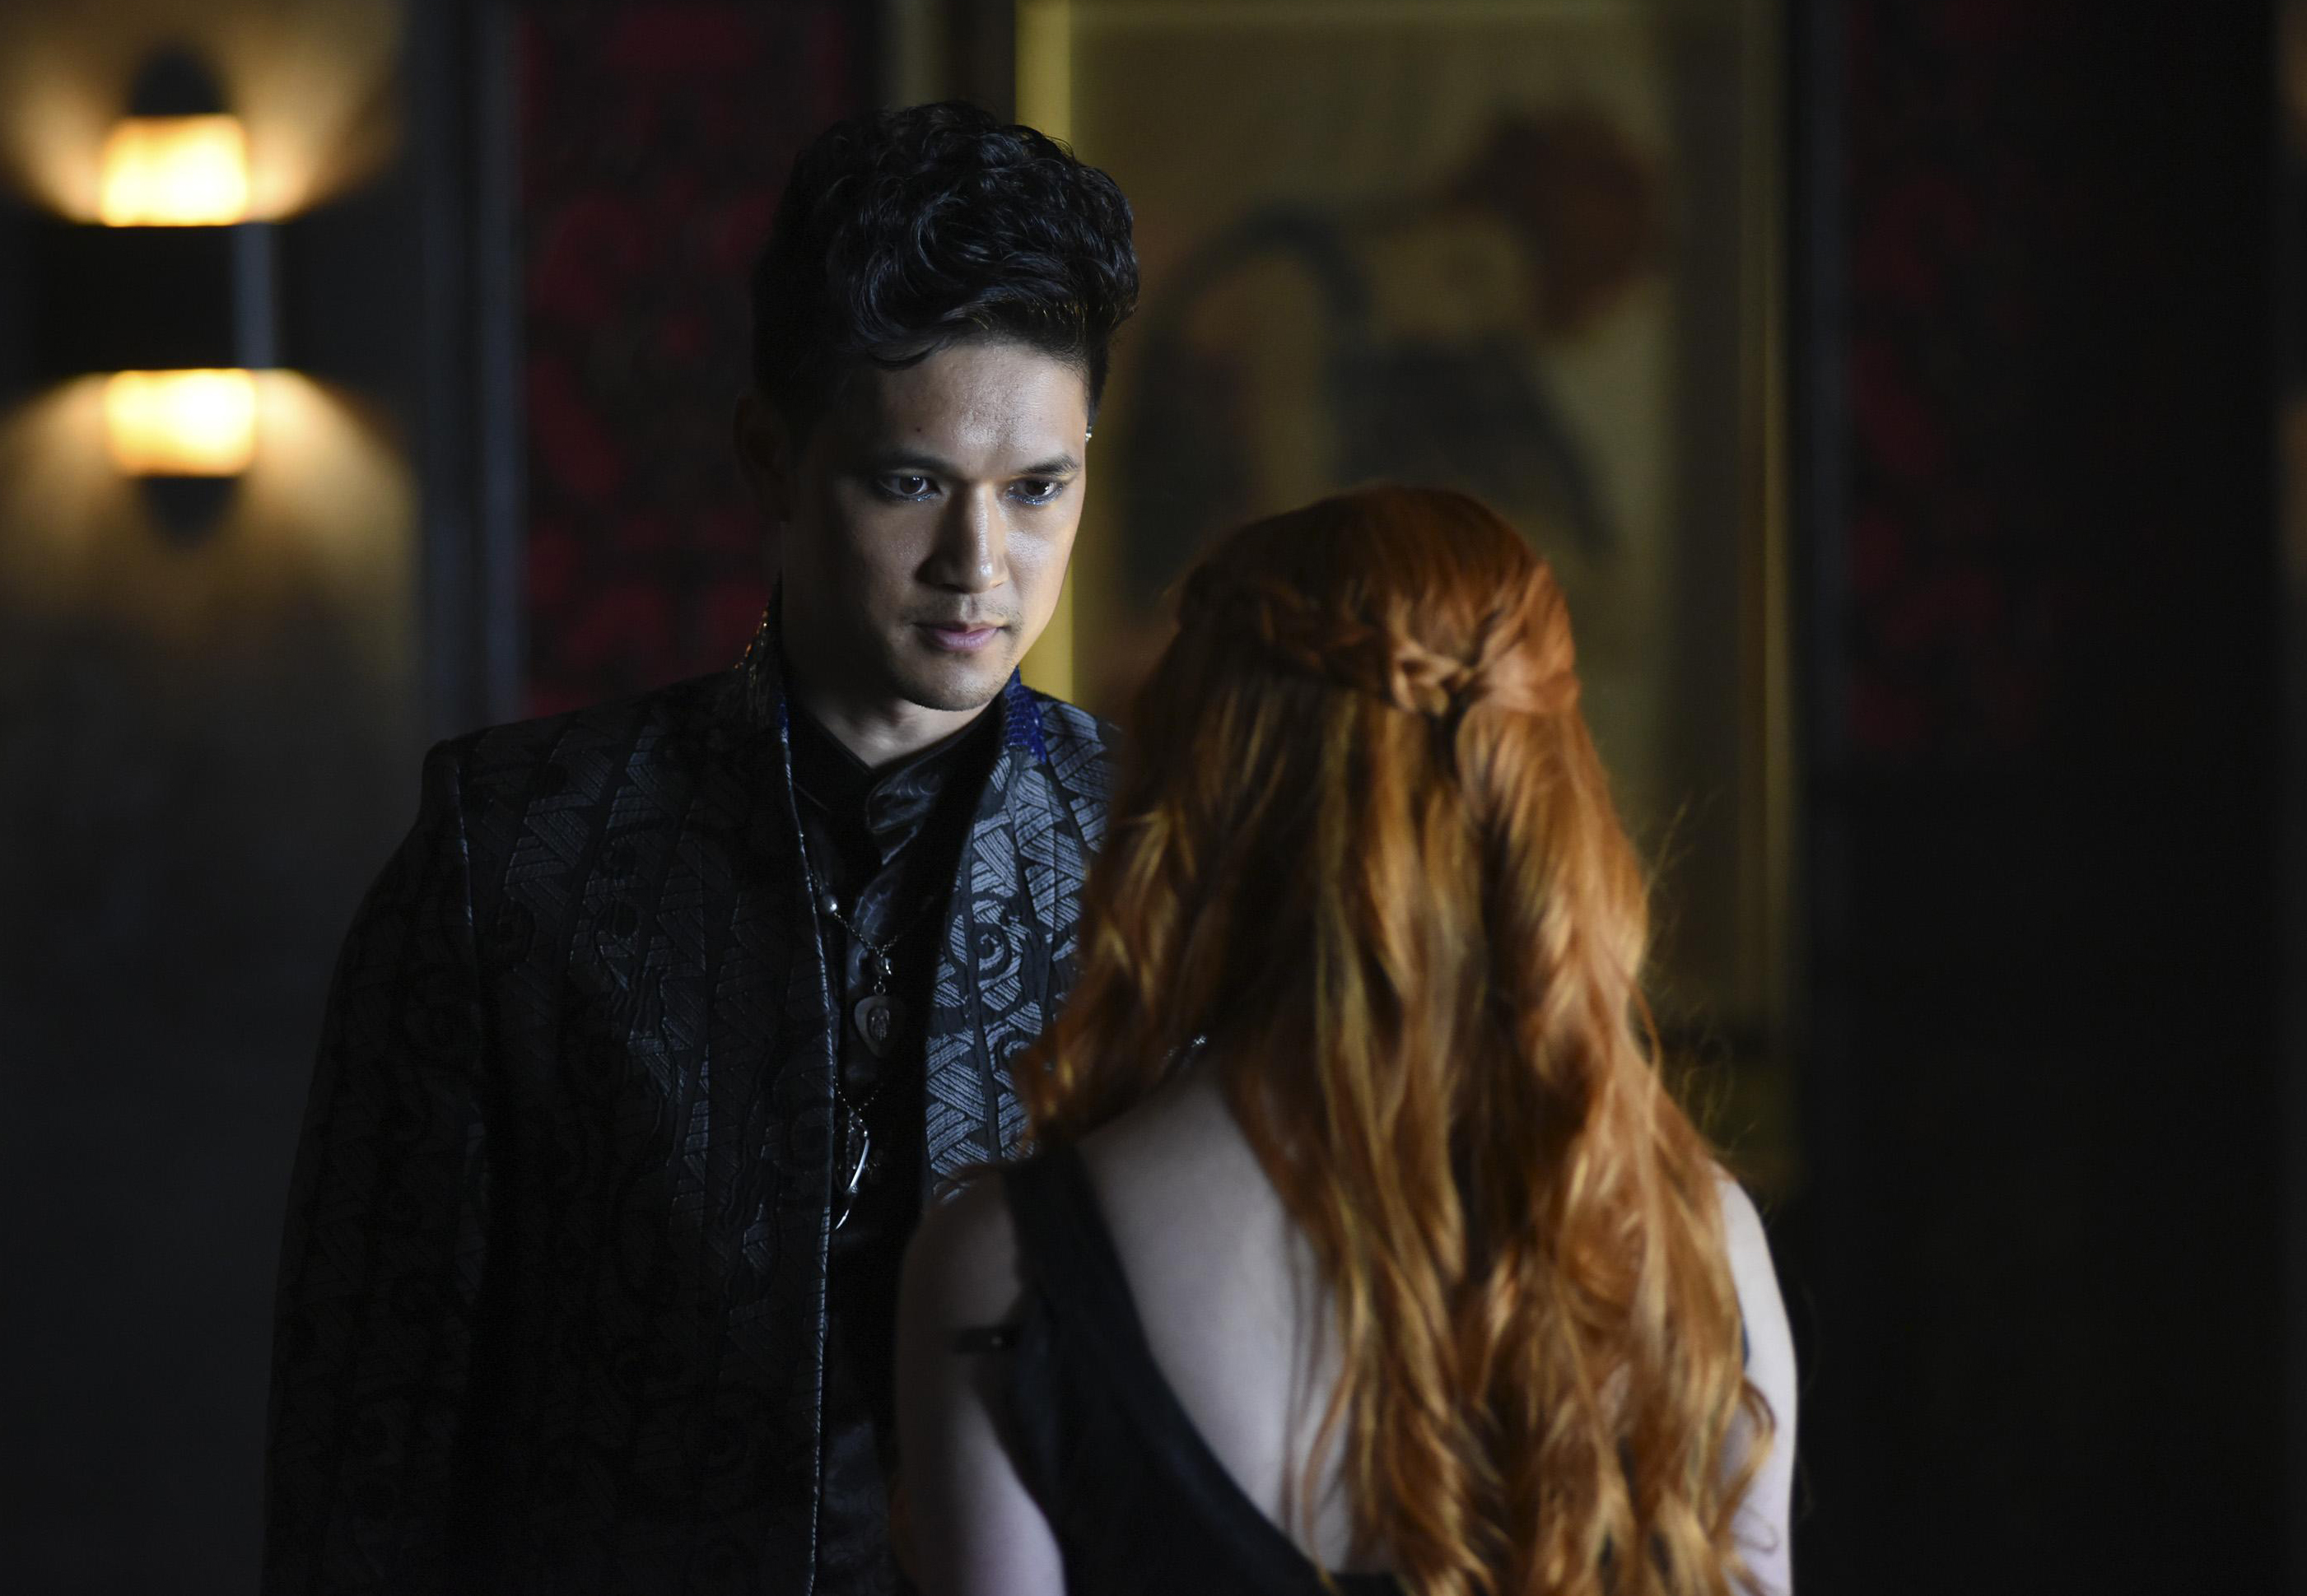 shadowhunters-episode-4-04